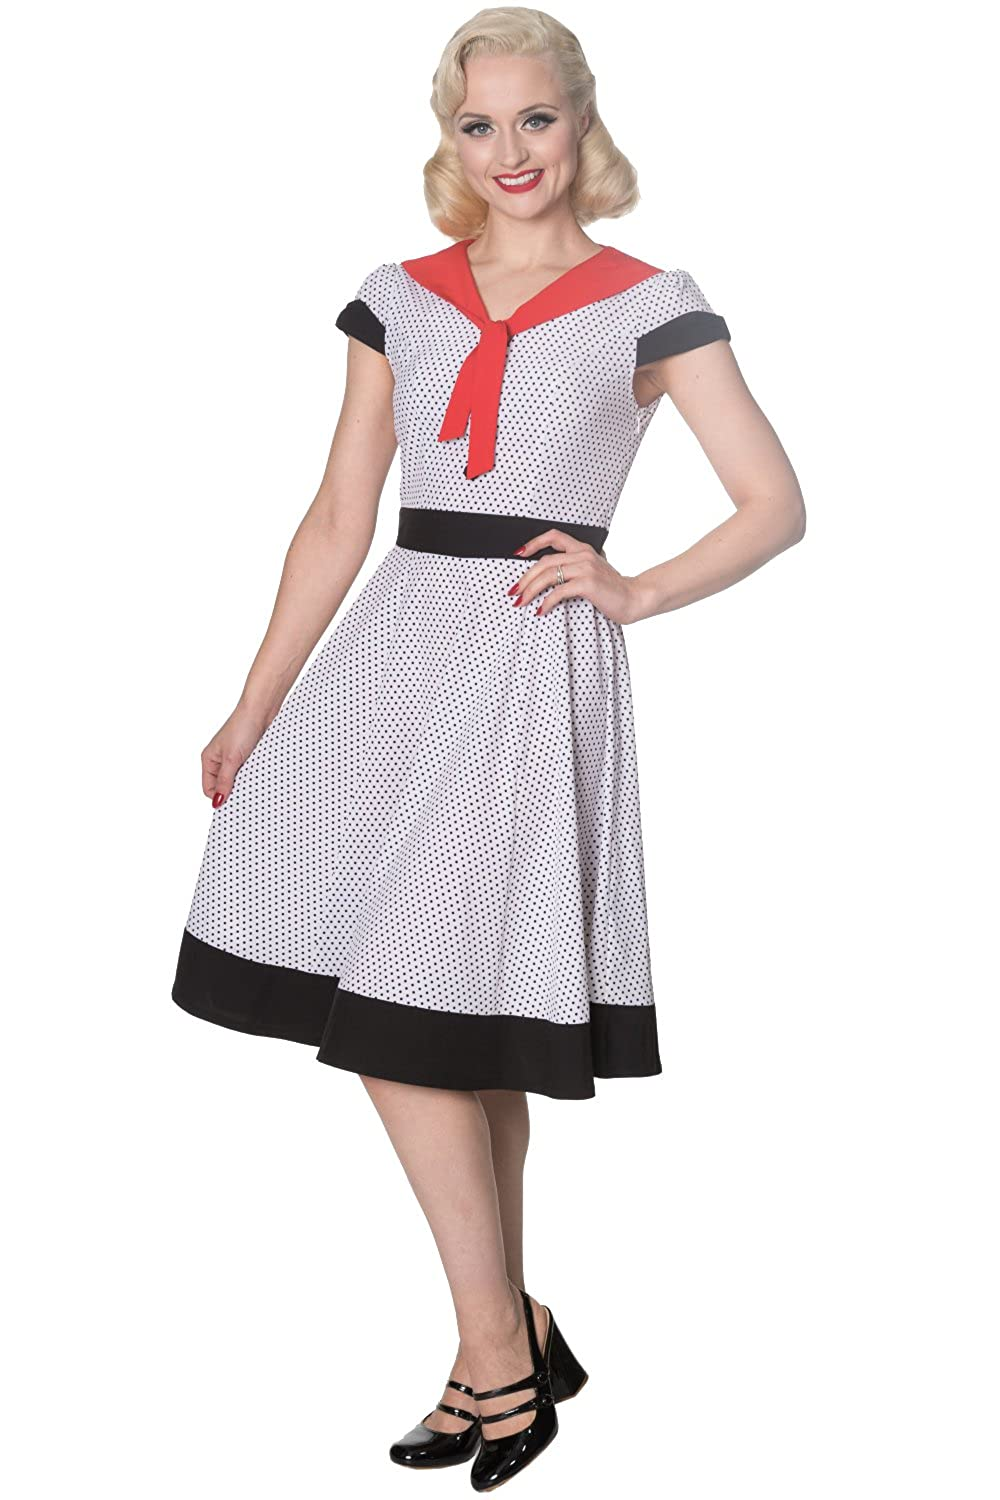 Sailor Dresses, Nautical Theme Dress, WW2 Dresses Banned The Insider Retro Vintage Tea Dress - White Black or Navy $50.95 AT vintagedancer.com